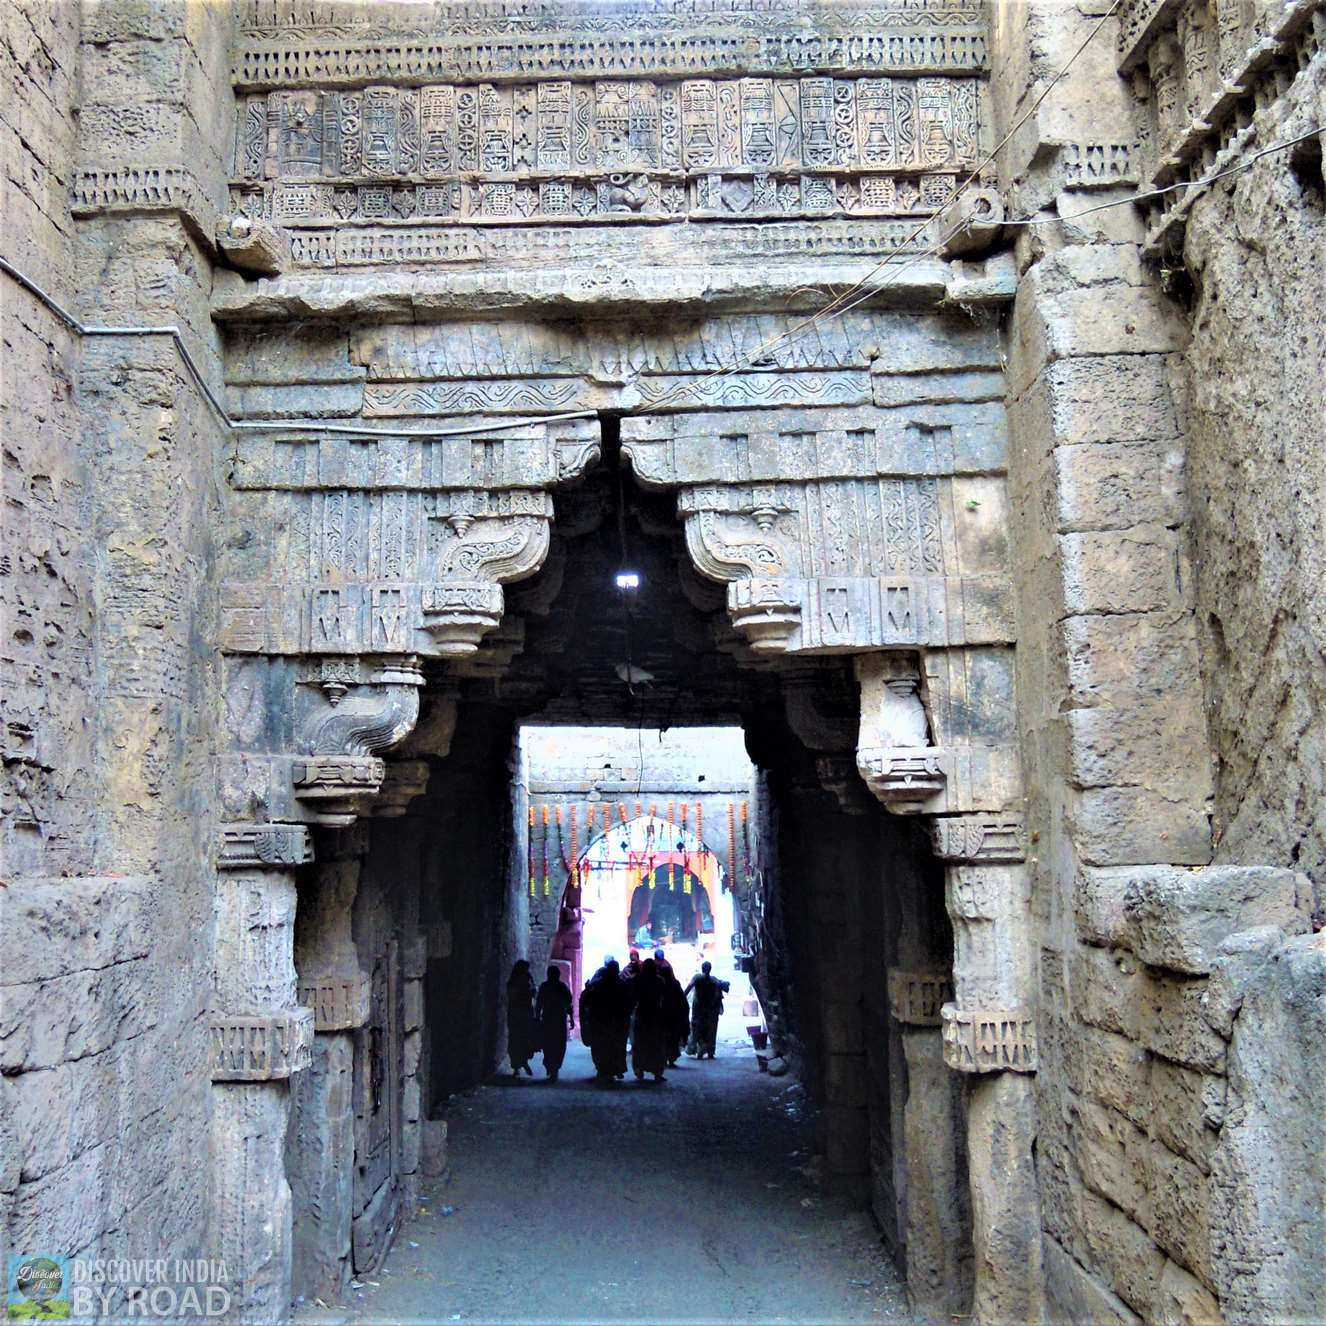 Arch Way to Inside Uperkot fort